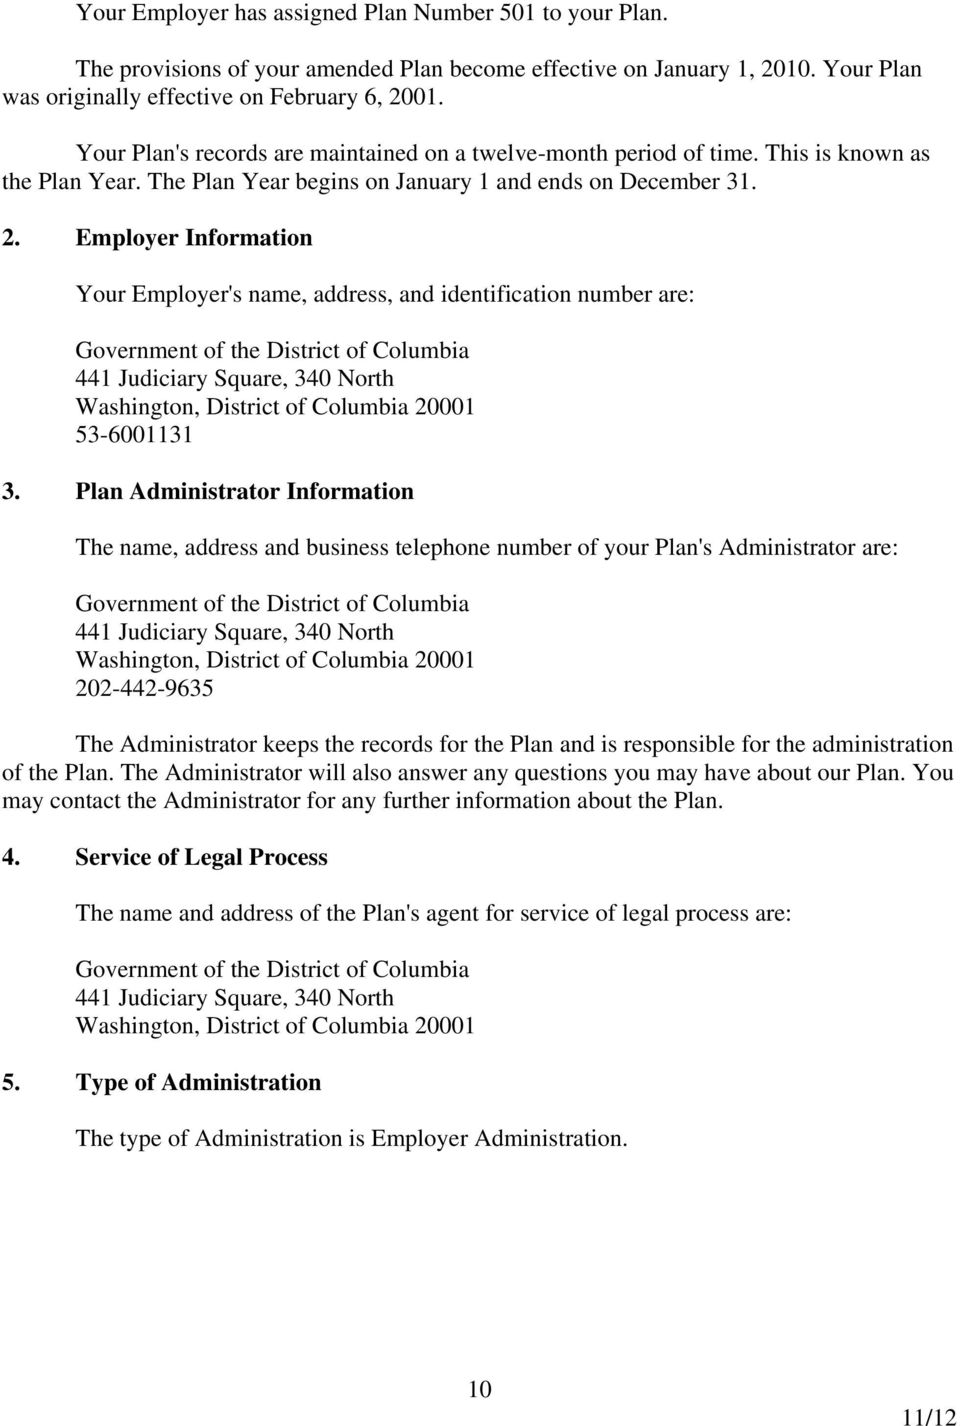 Employer Information Your Employer's name, address, and identification number are: Government of the District of Columbia 441 Judiciary Square, 340 North Washington, District of Columbia 20001